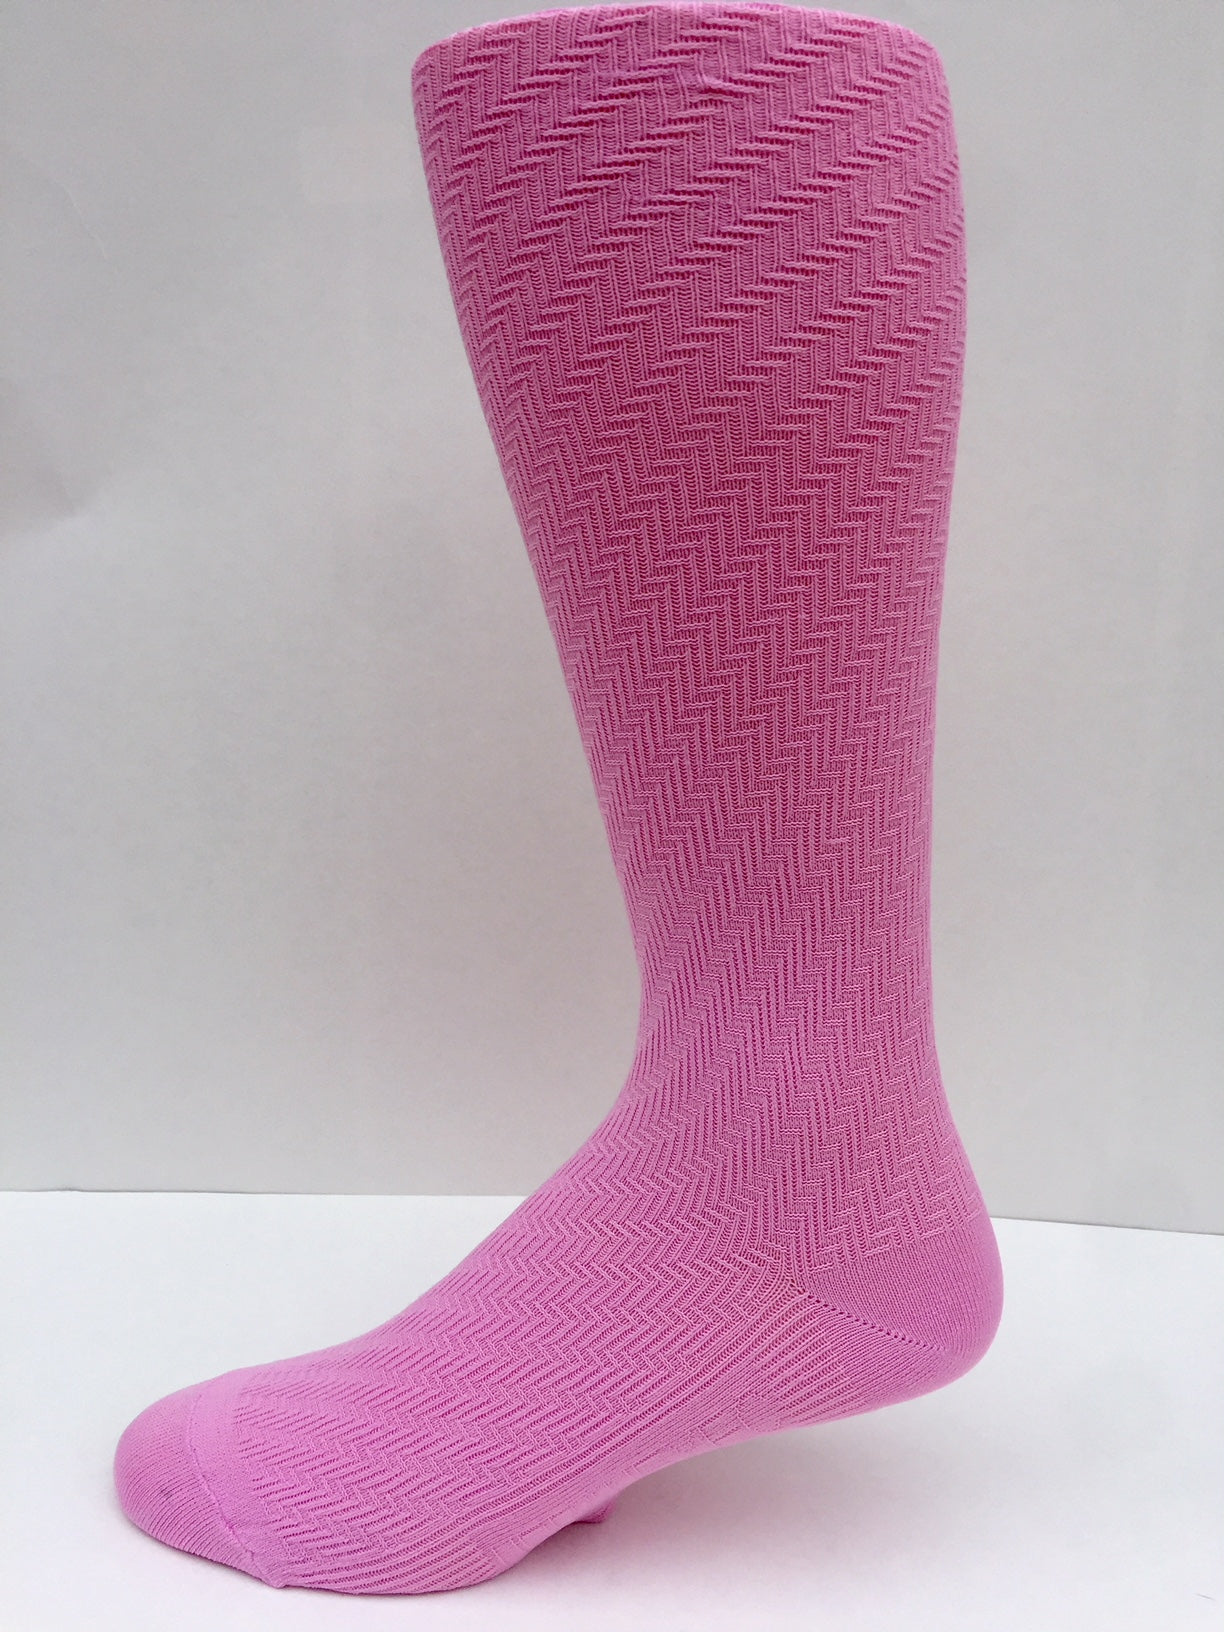 A New Spring Solid Pink Herringbone Pattern Men's Socks OTC